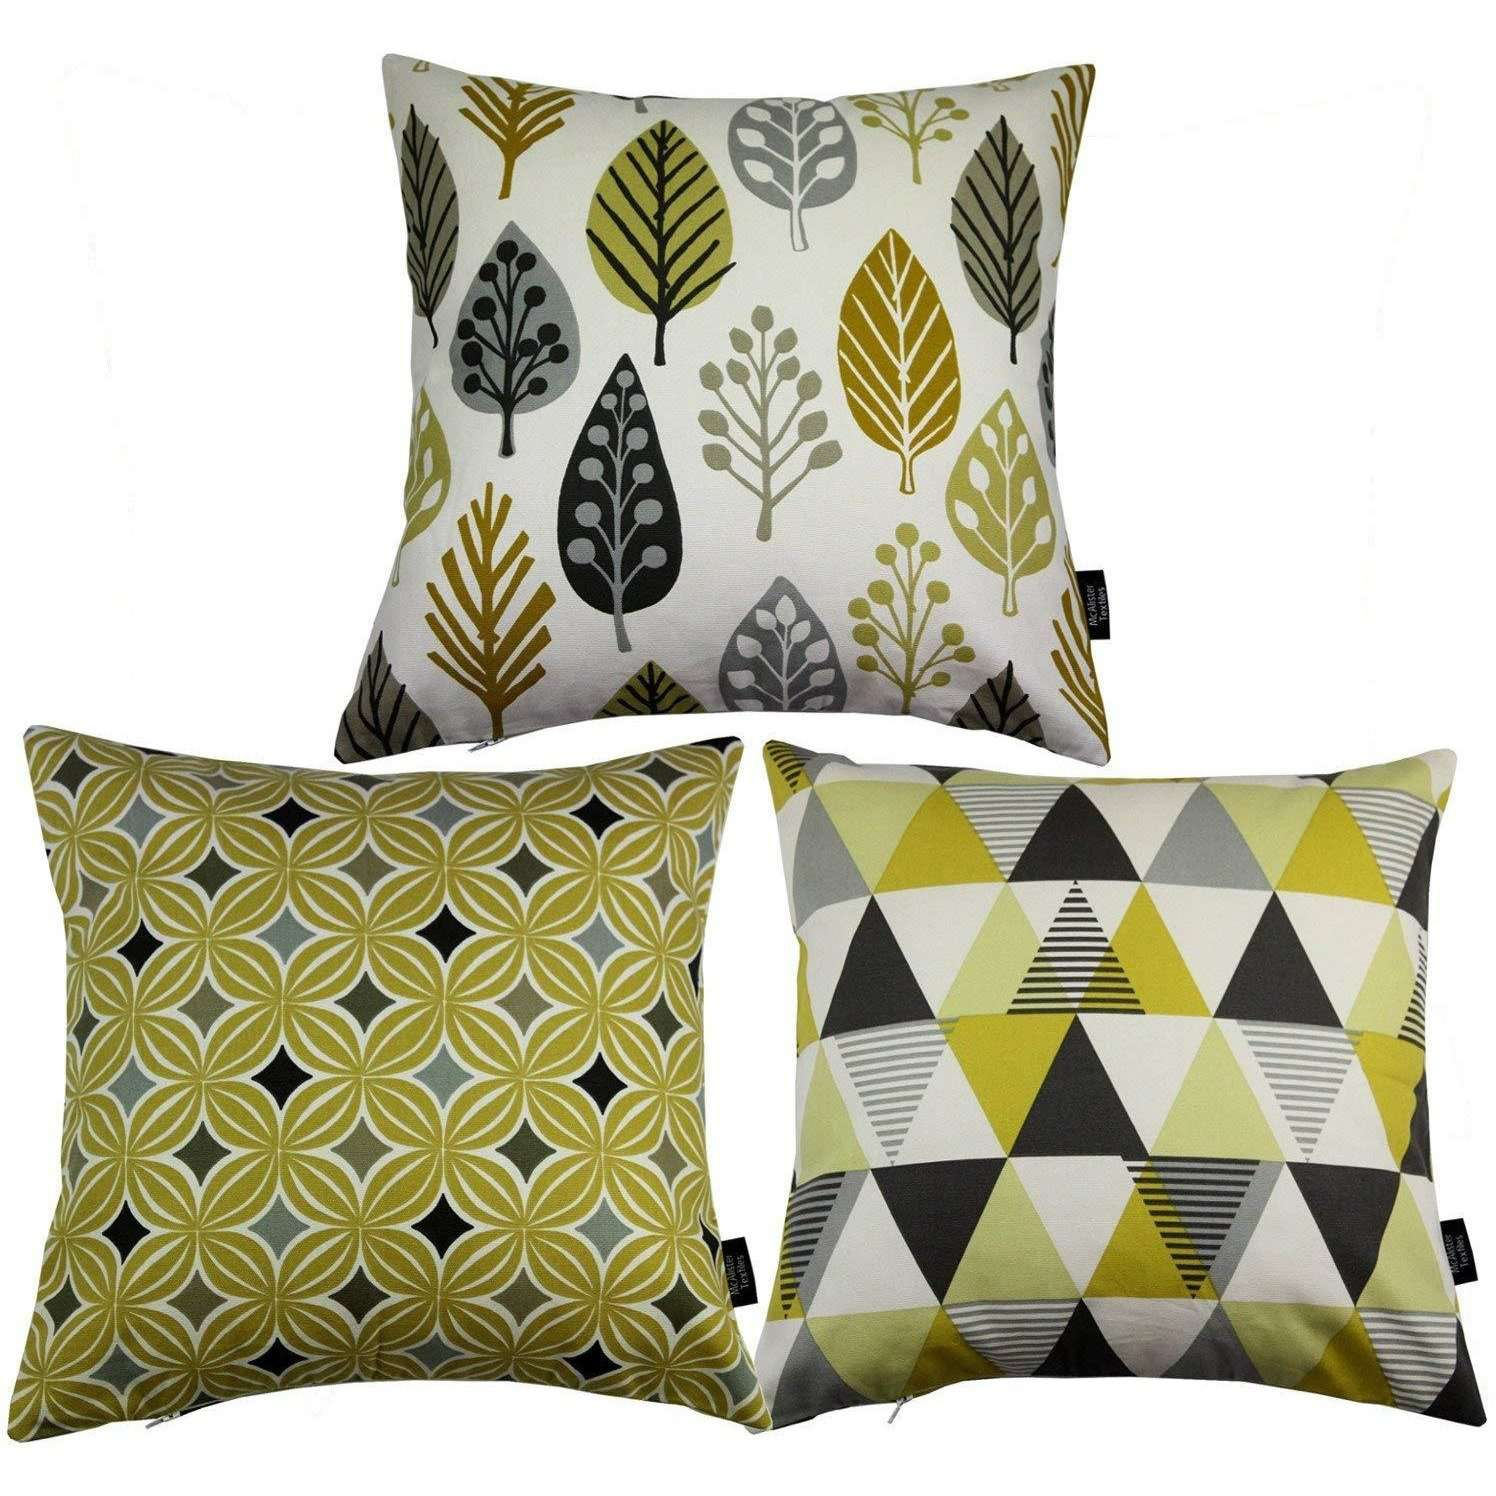 McAlister Textiles Geometric Ochre Yellow 43cm x 43cm Cushion Set of 3 Cushions and Covers Cover Only